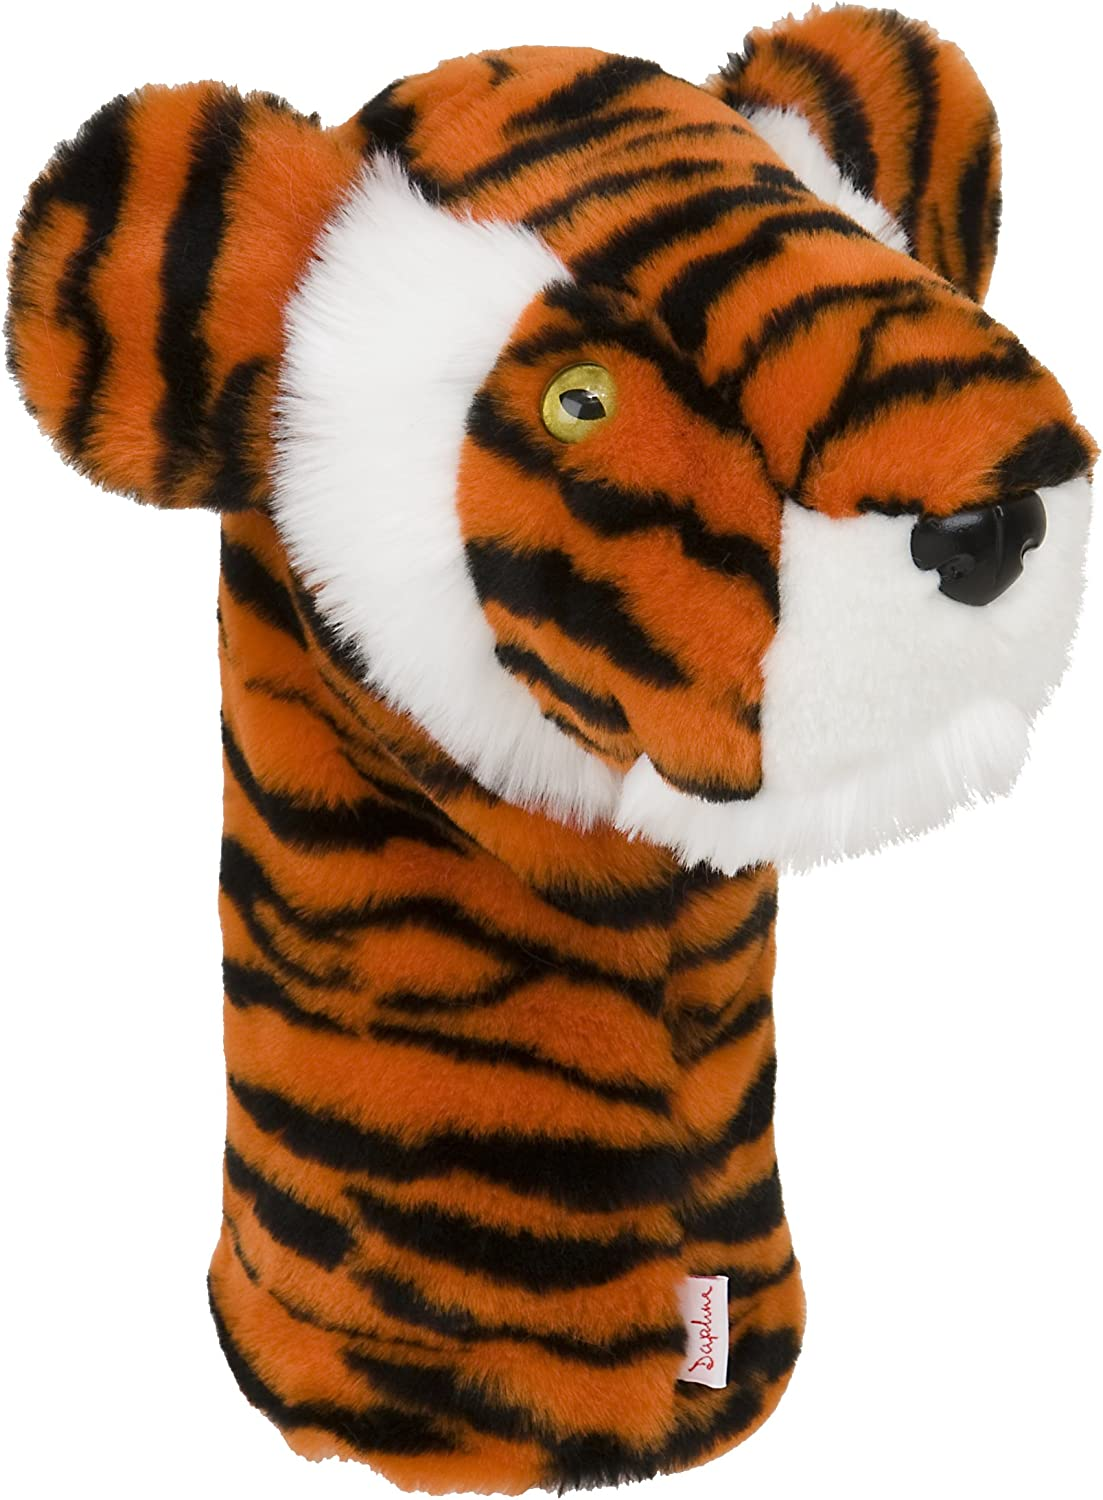 Daphne's Tiger Headcovers : Golf Club Head Covers : Sports & Outdoors